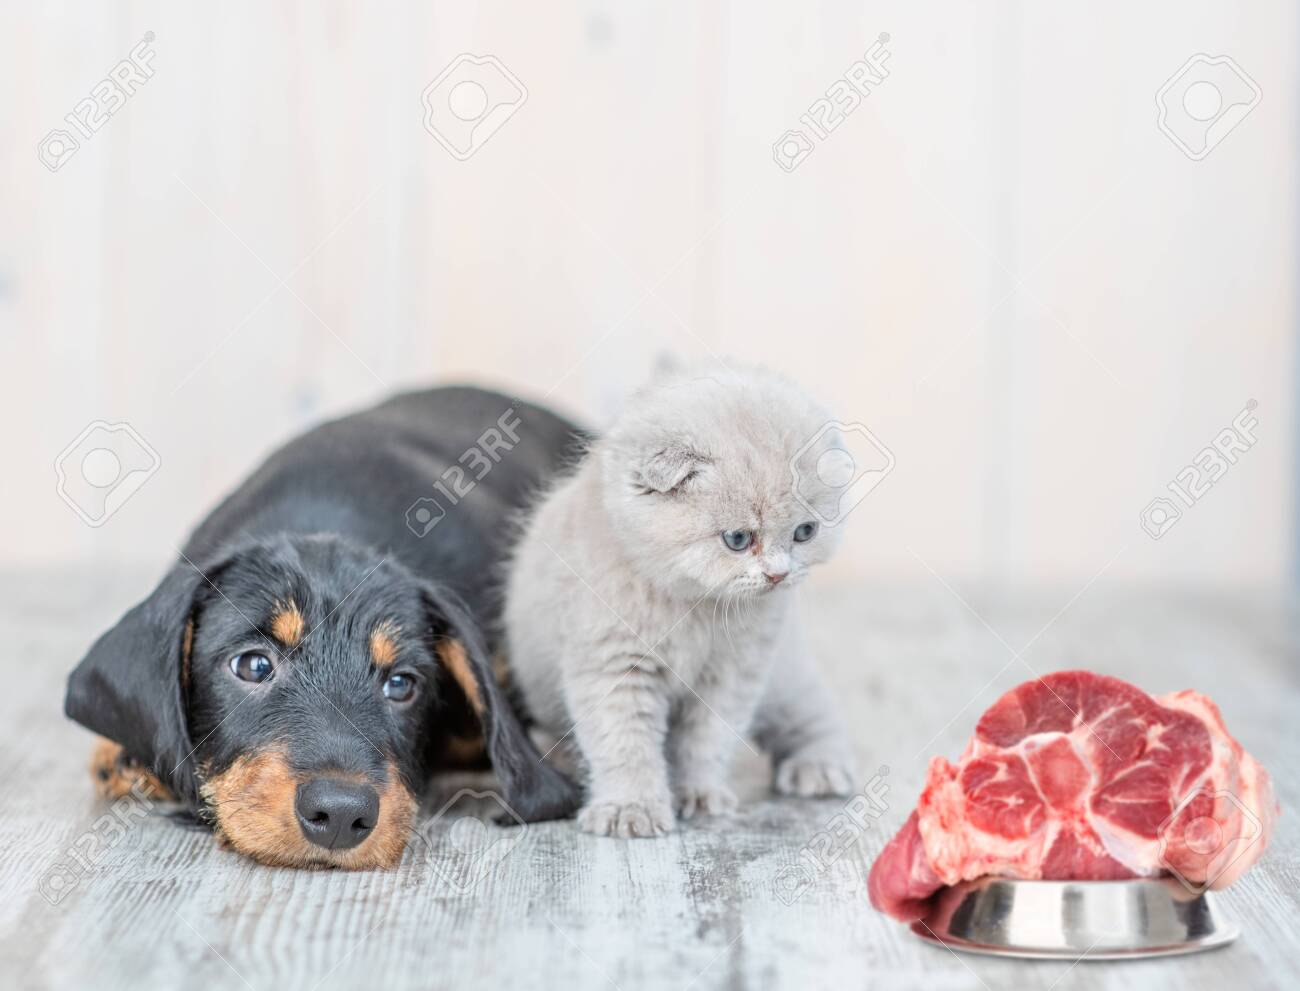 Cute Baby Kitten Sitting With Dachshund Puppy On The Floor At Stock Photo Picture And Royalty Free Image Image 136561717